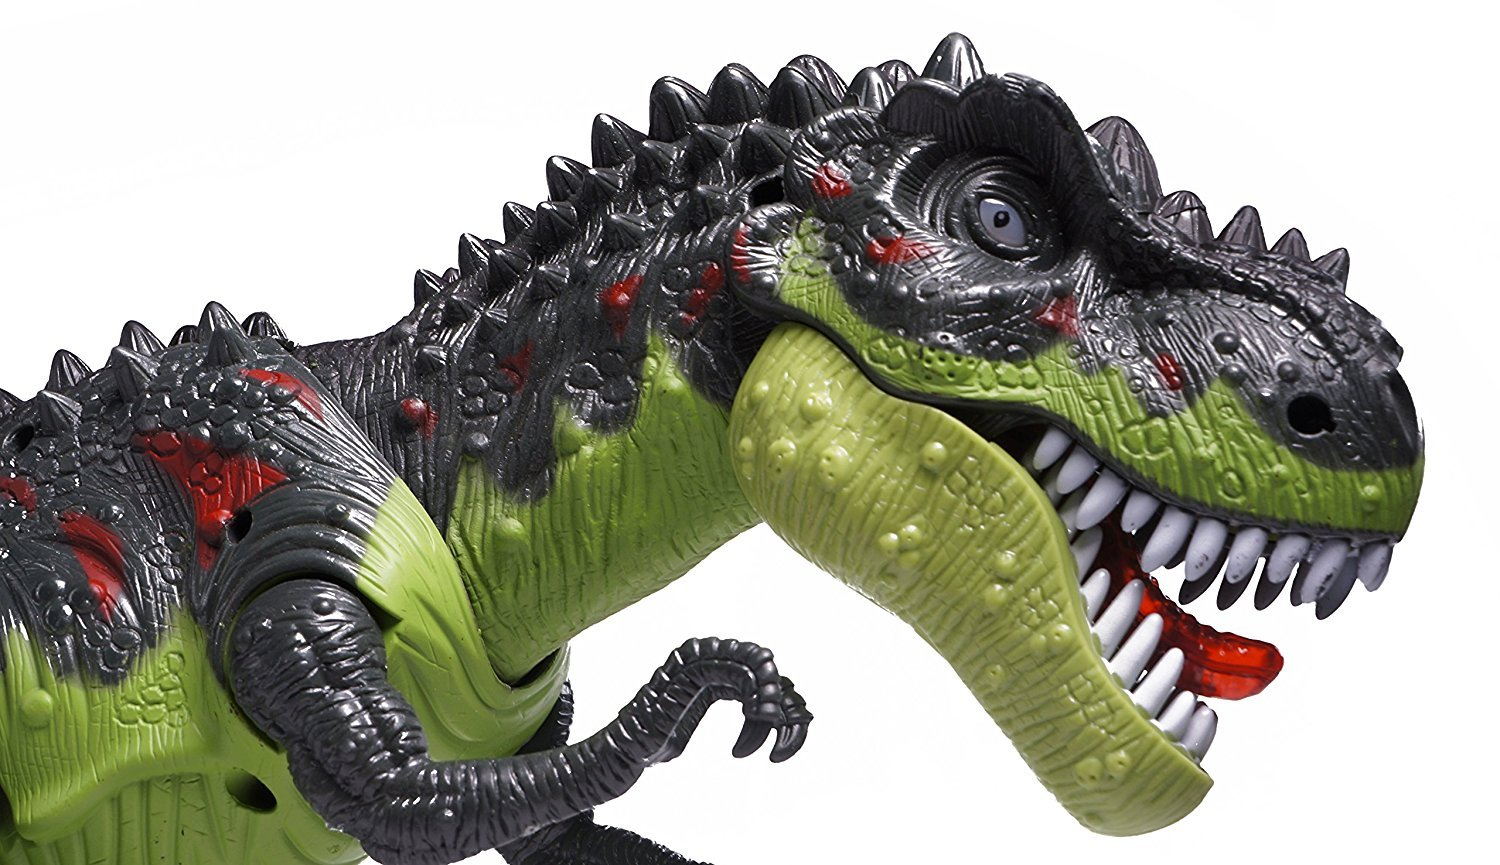 CifToys Tyrannosaurus Rex Dinosaur Walking Dinosaur Toys Kids Toy Realistic Jurassic Trex Dinosaur Action Toy Figure Walking Moving Glowing Dino Figure (Green) by CifToys (Image #3)